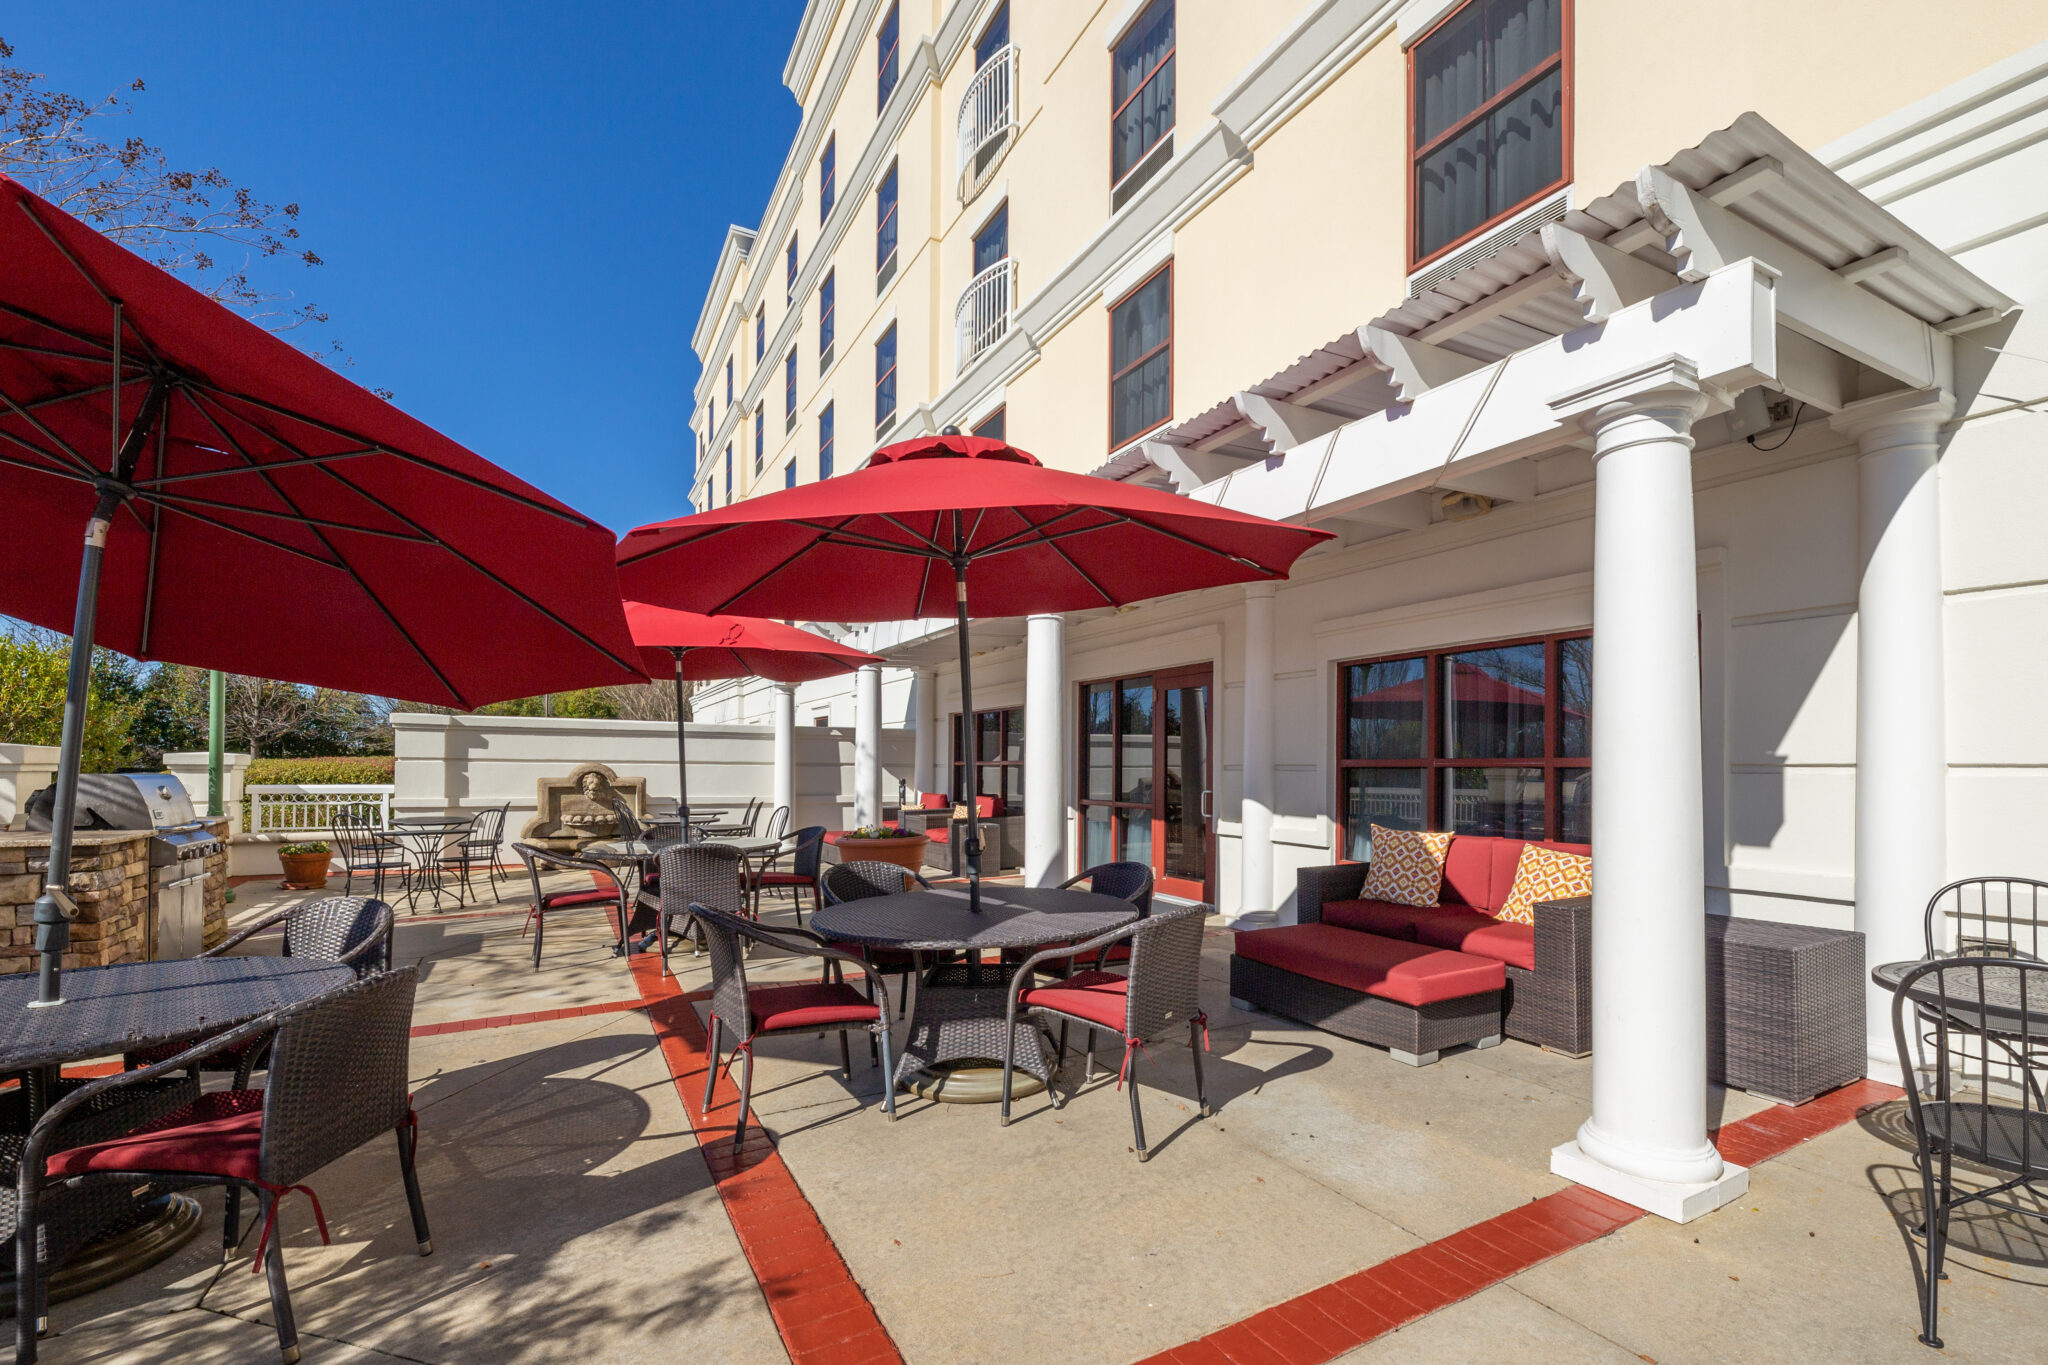 Hampton Inn Lawrenceville Duluth ATLDM Outdoor Space-2